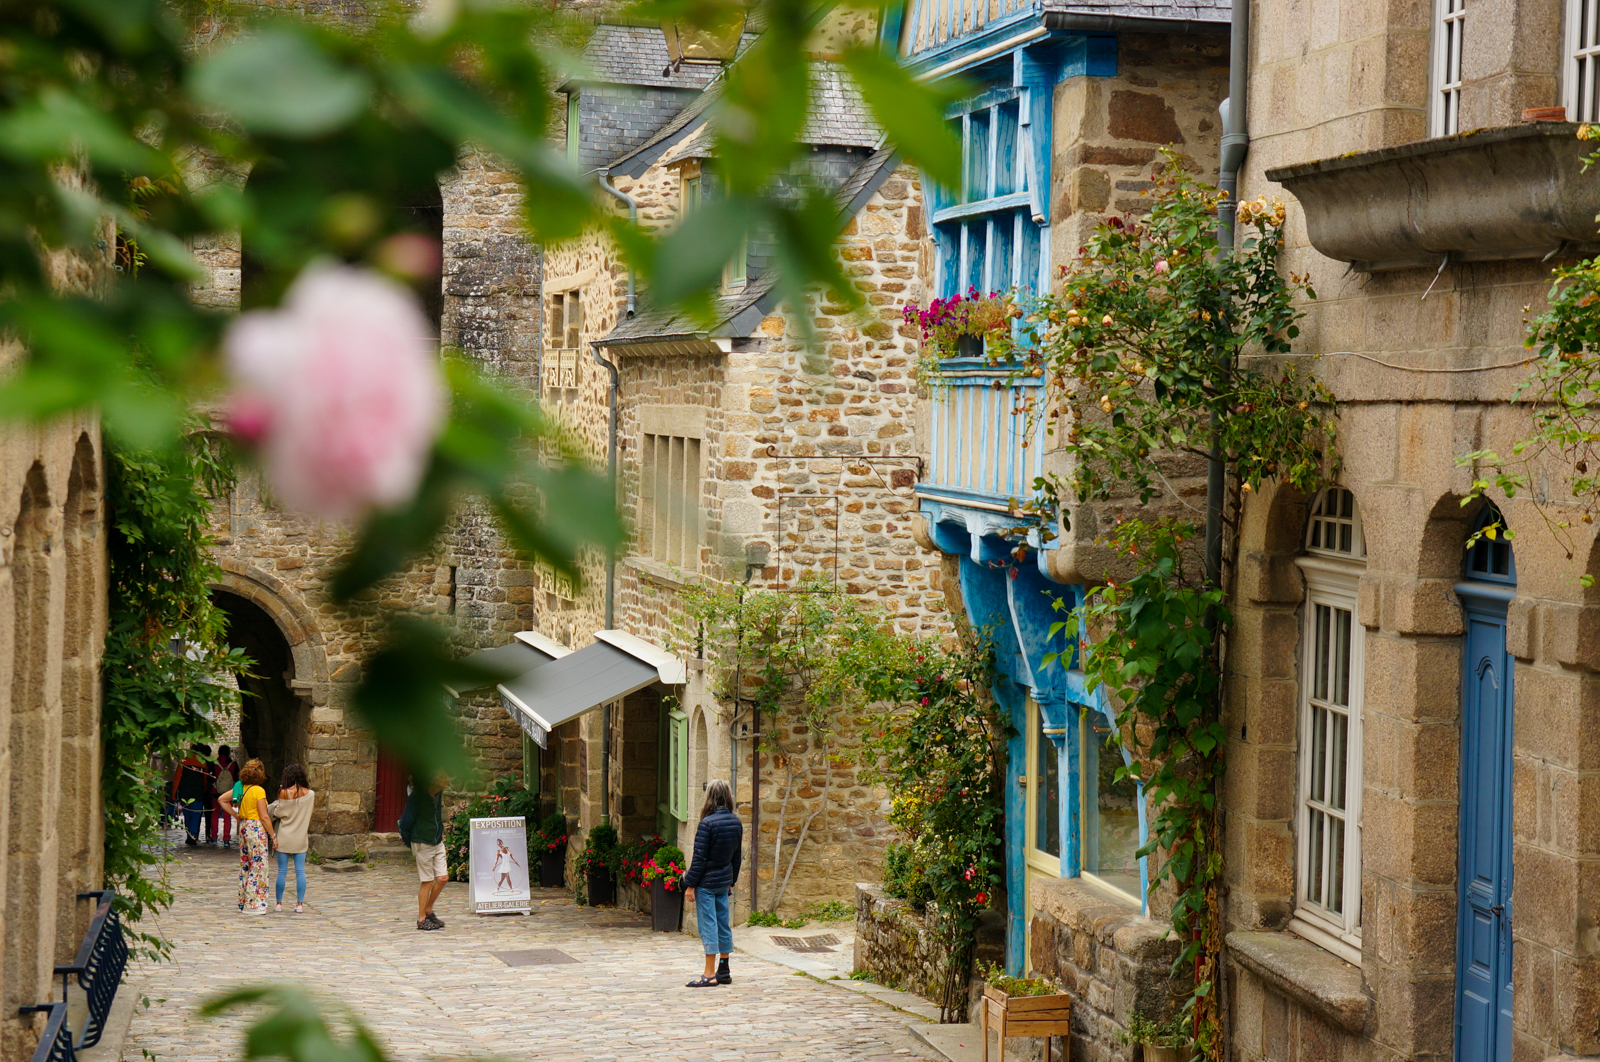 dinan, village bretagne, village vieilles pierres france, tourisme bretagne, tourisme france, village d'art